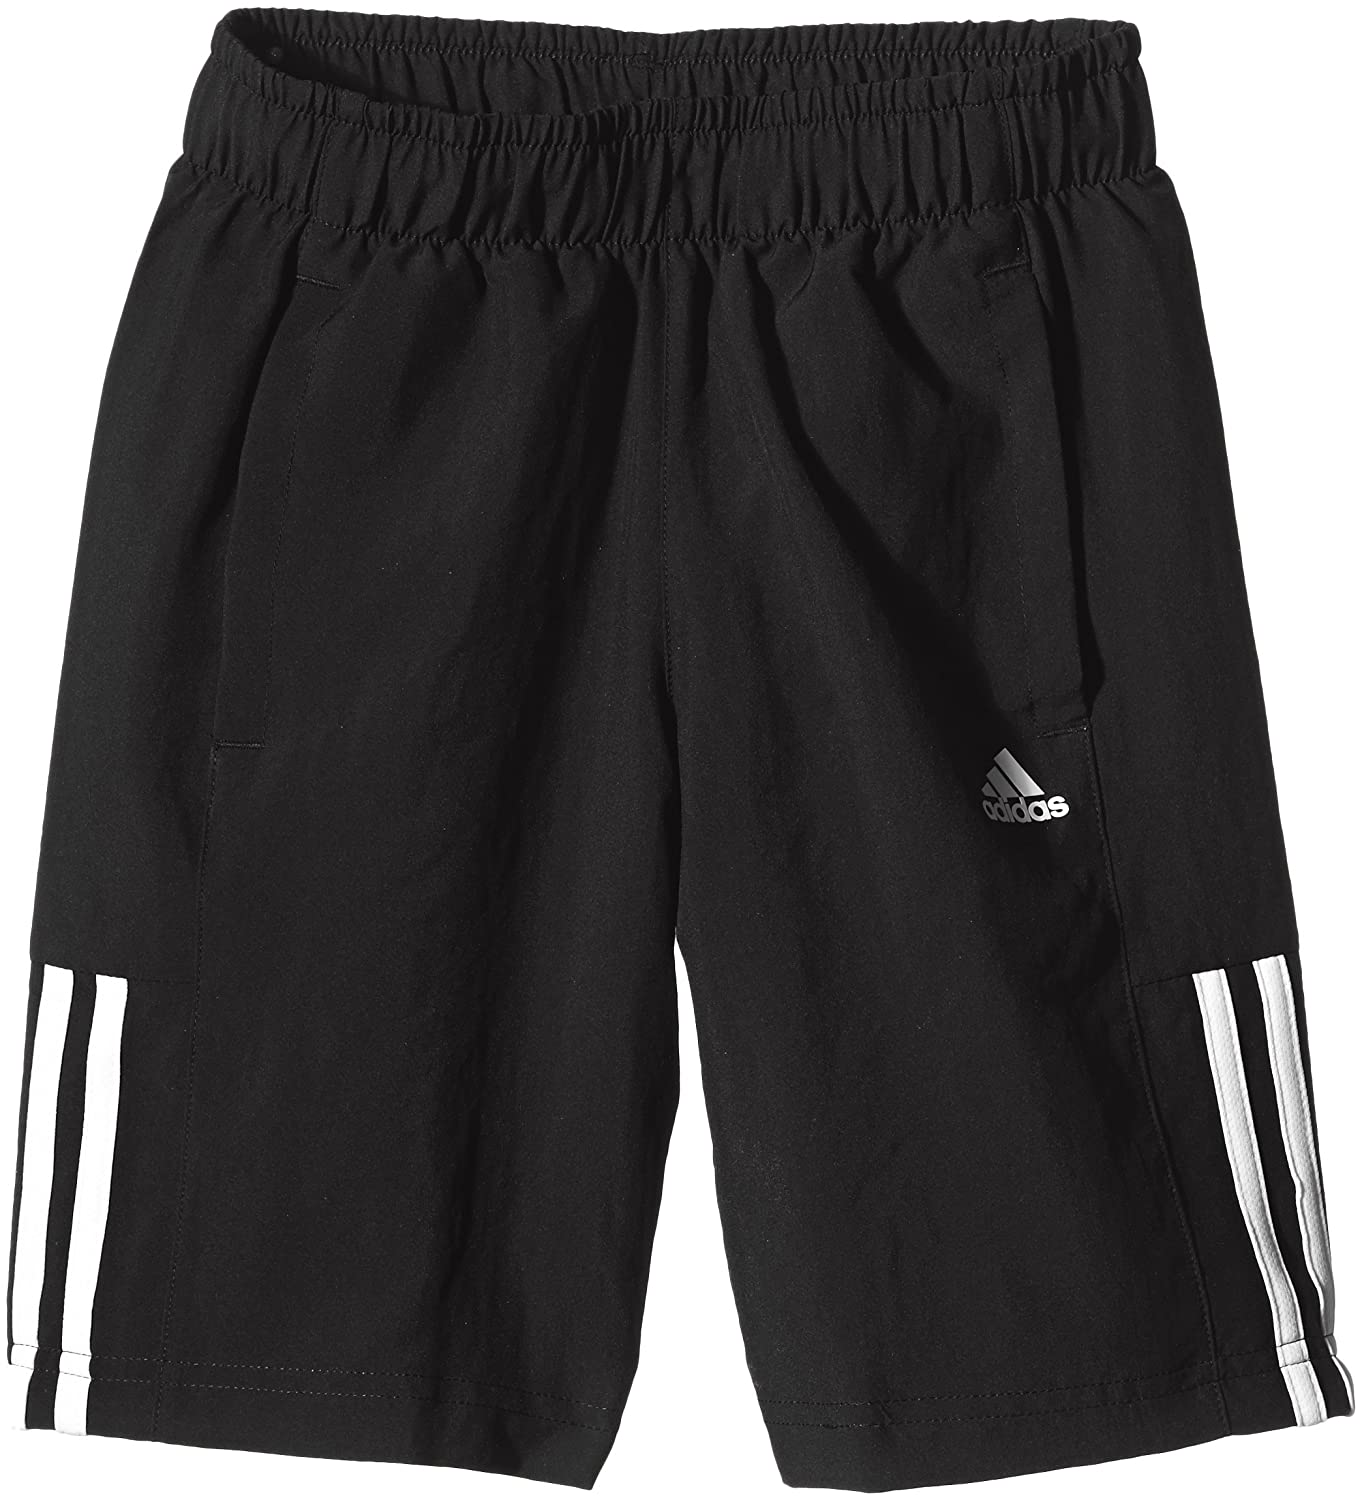 adidas Essentials 3 Stripes Boys Shorts S23285